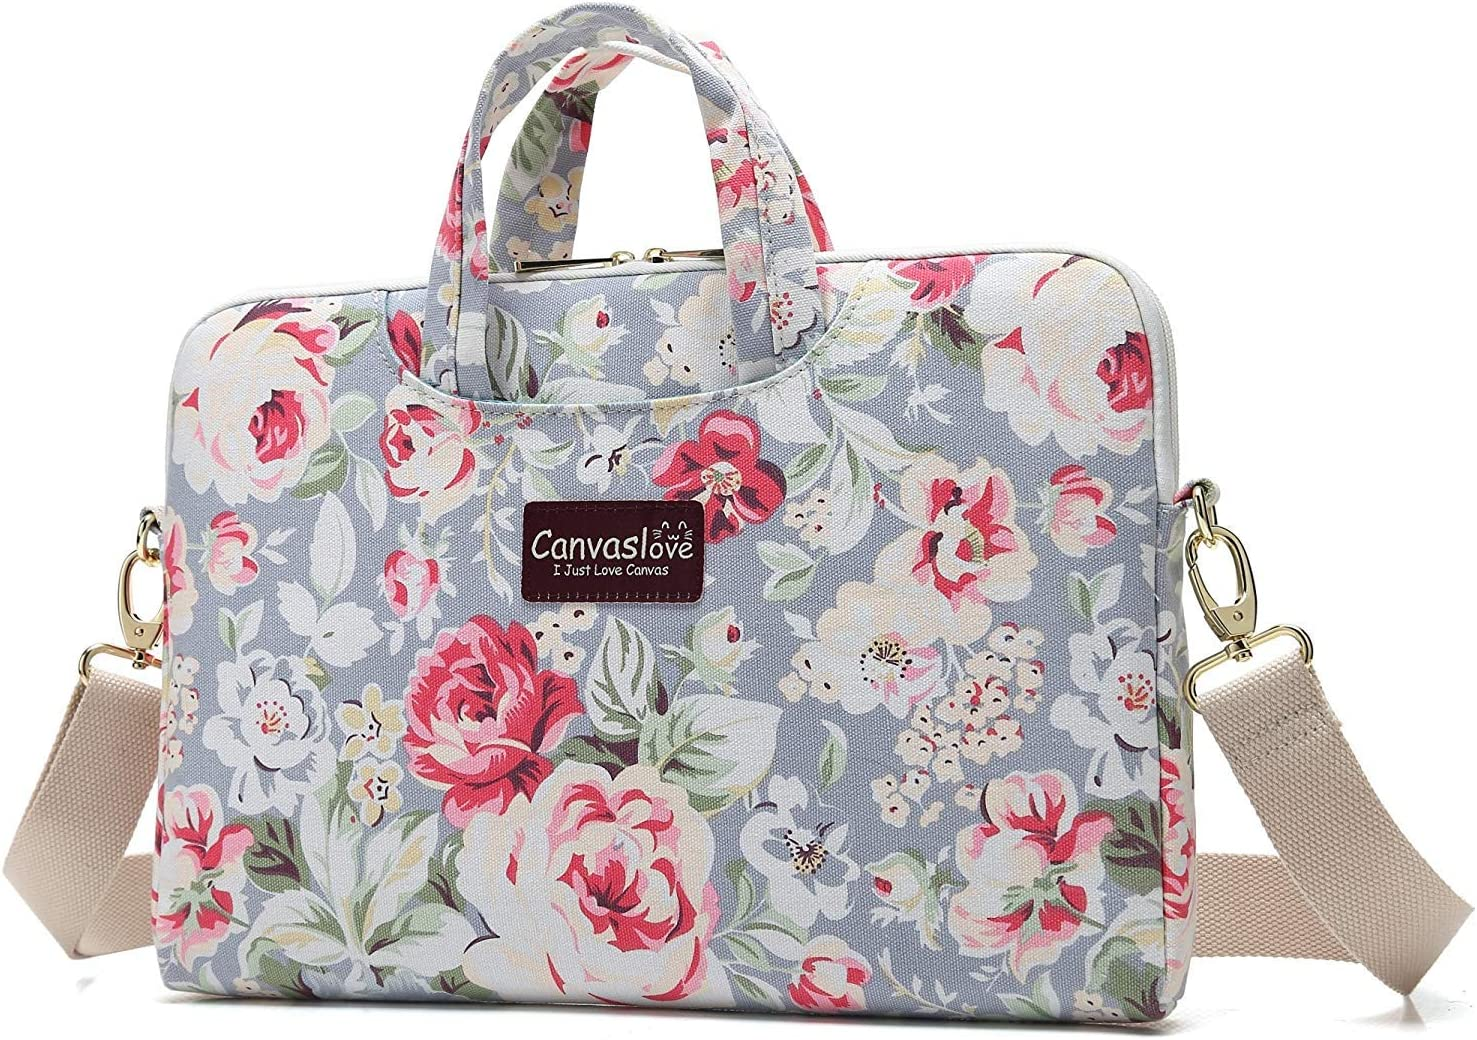 Canvaslove Blue Rose Pattern Water Resistant Laptop Shoulder Messenger Bag for MacBook Pro 15 inch,MacBook 16 inch and 14 inch,15.4 inch,15.6 inch Laptop